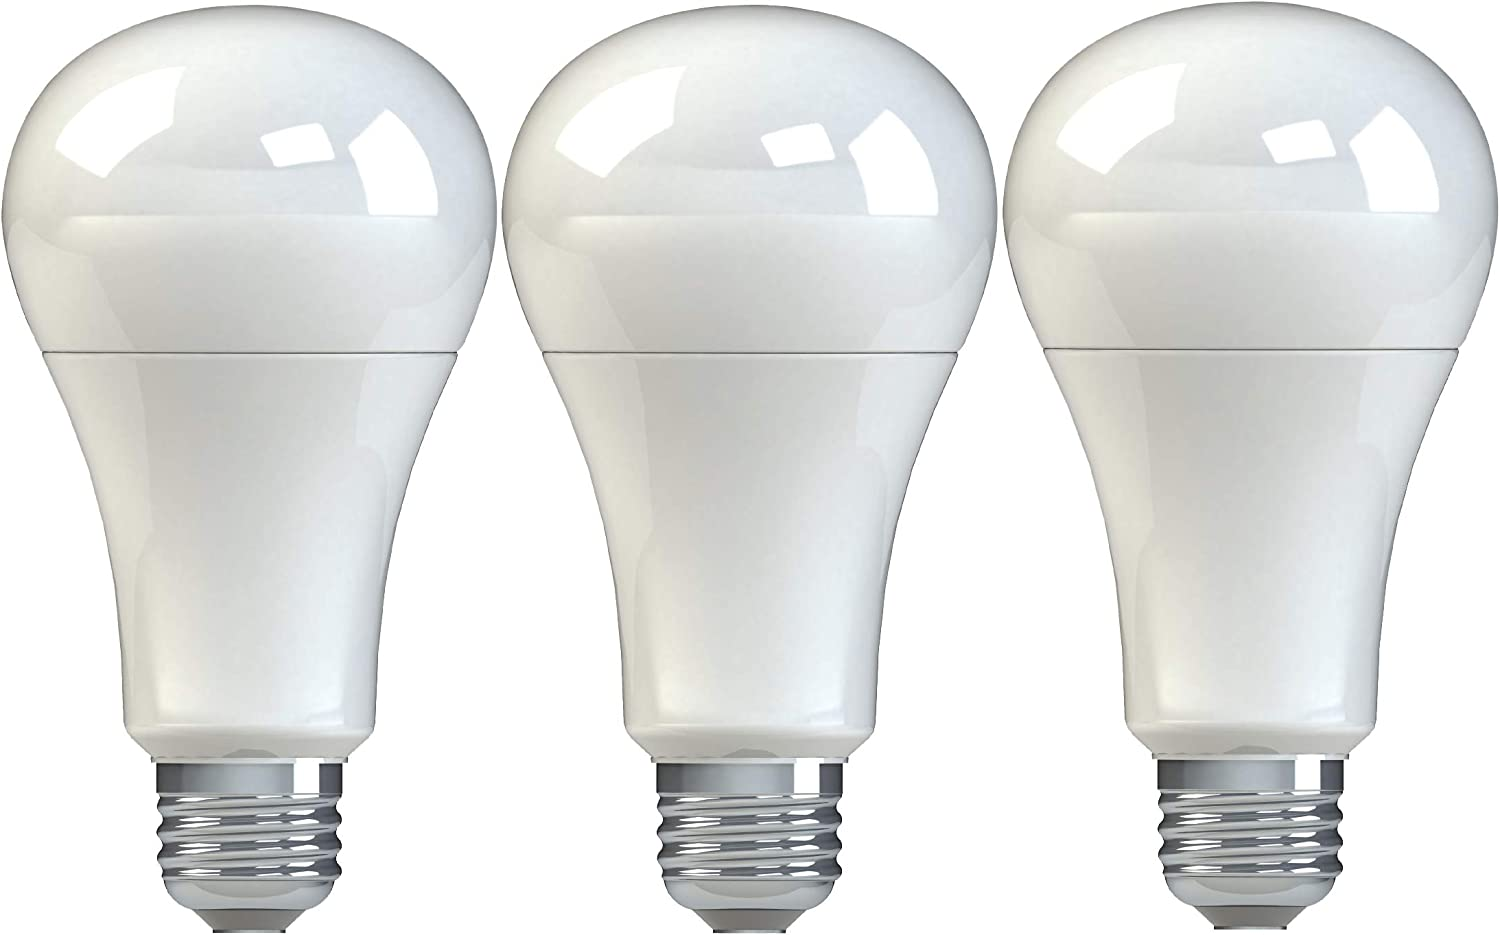 GE Lighting 99198 General Purpose Classic Shape A21 Soft LED 16-Watt (100-Watt Replacement), 1520-Lumen Medium Base, 3-Pack, Frosted White, 3